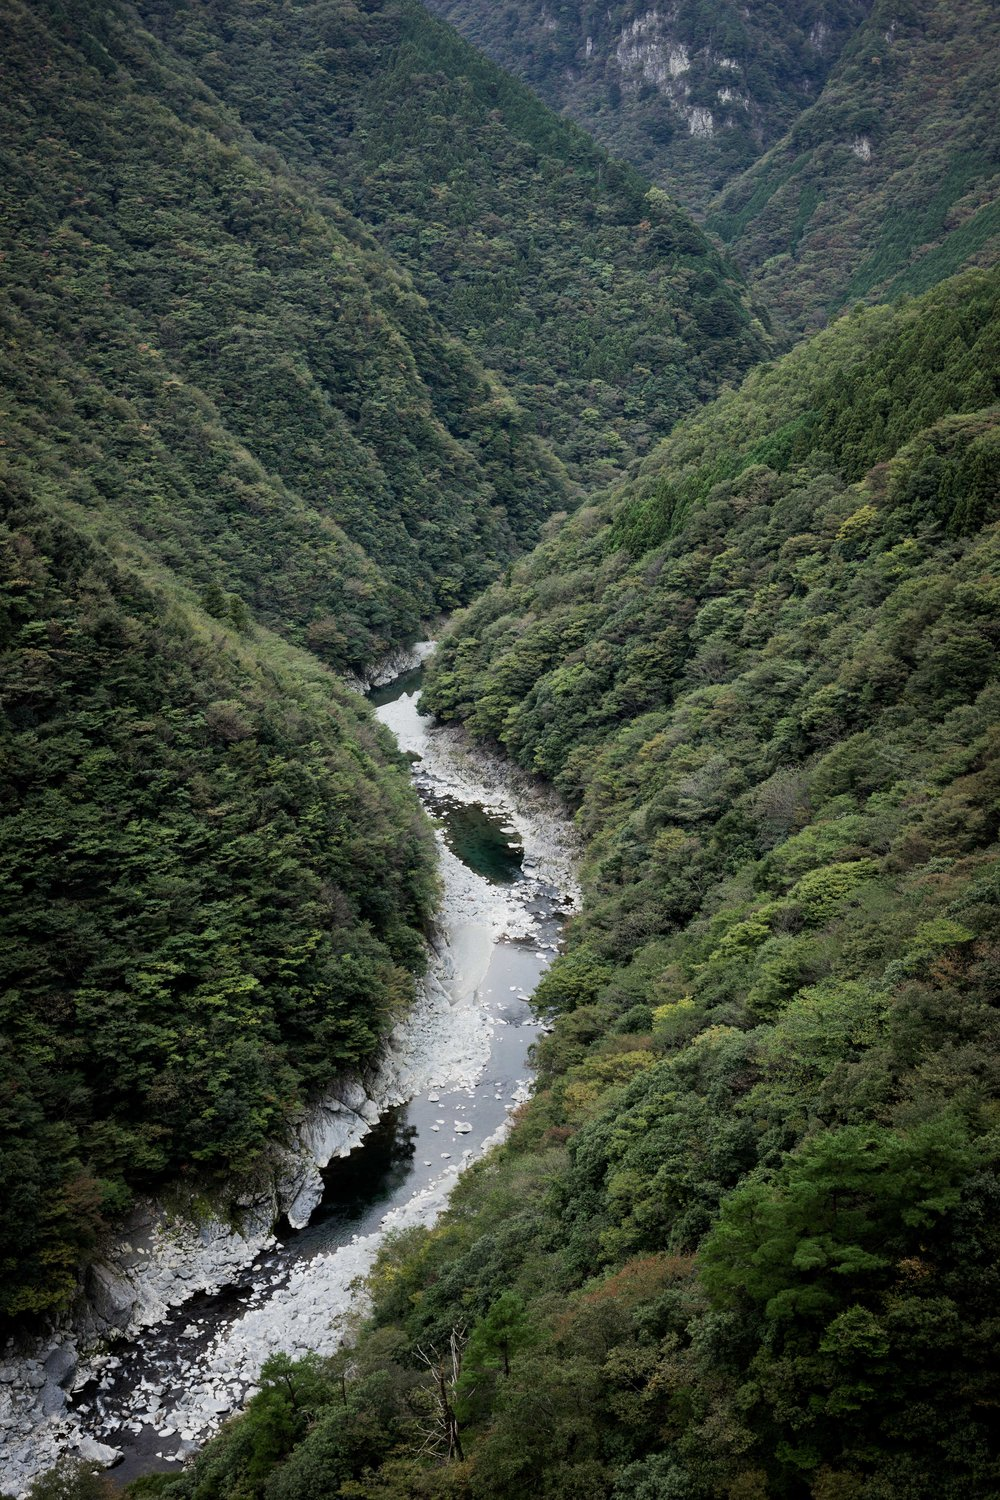 The Iya River